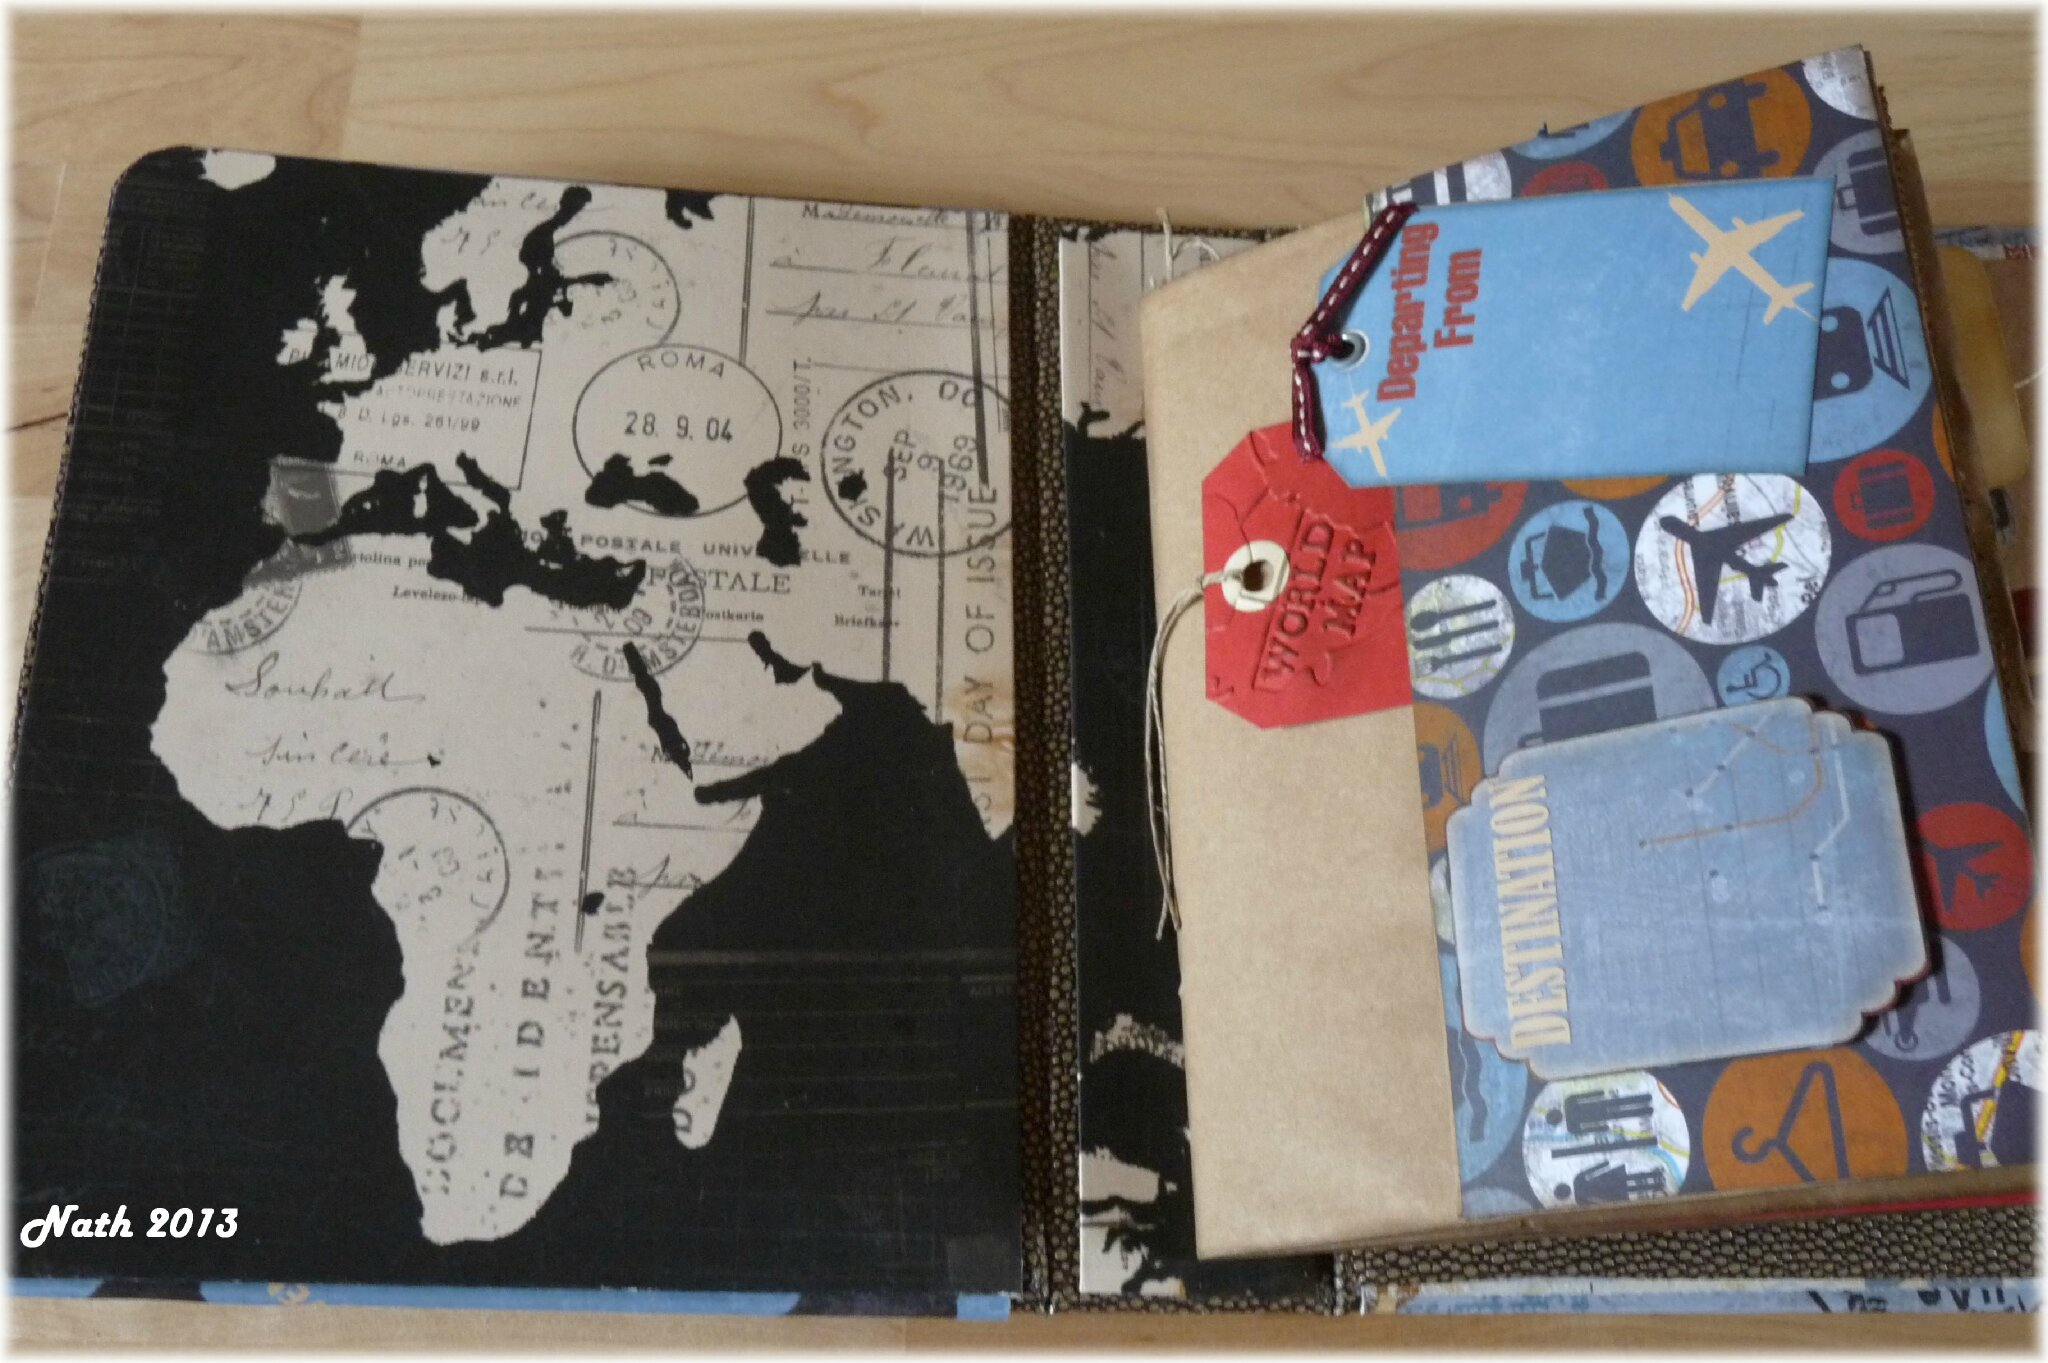 carnet de voyage sur la m dit rann e le scrap de nath. Black Bedroom Furniture Sets. Home Design Ideas